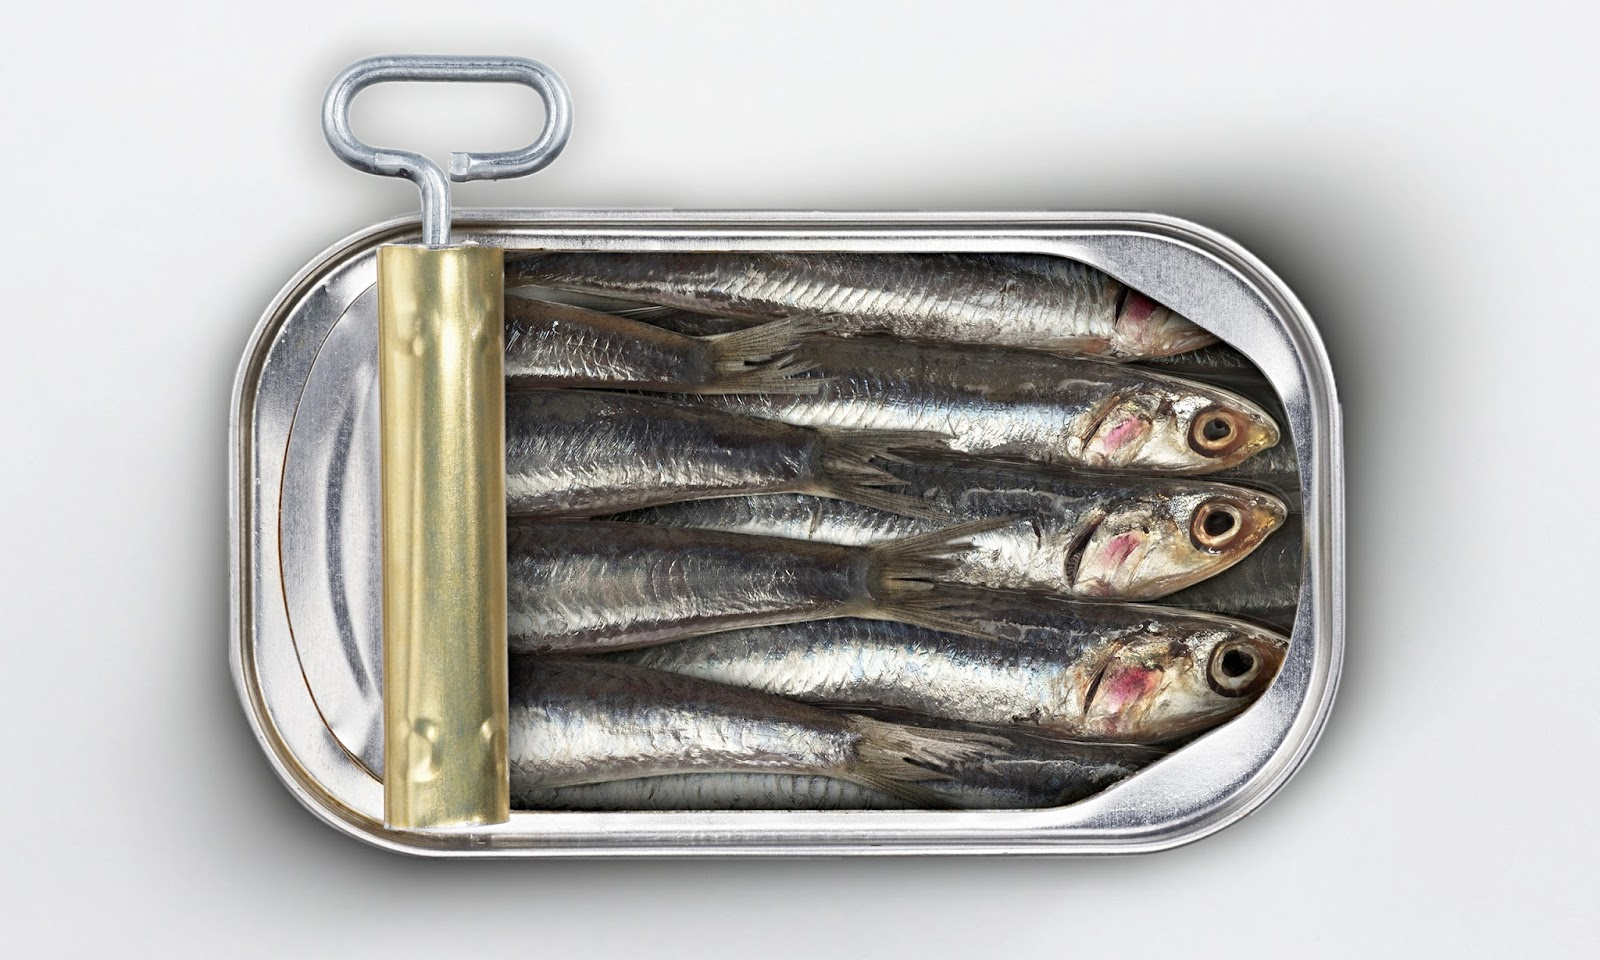 2 Sardines Are Sustainably Fished Abundant In Stock And They Also Well Managed This Is Why Categorized As One Of The Best